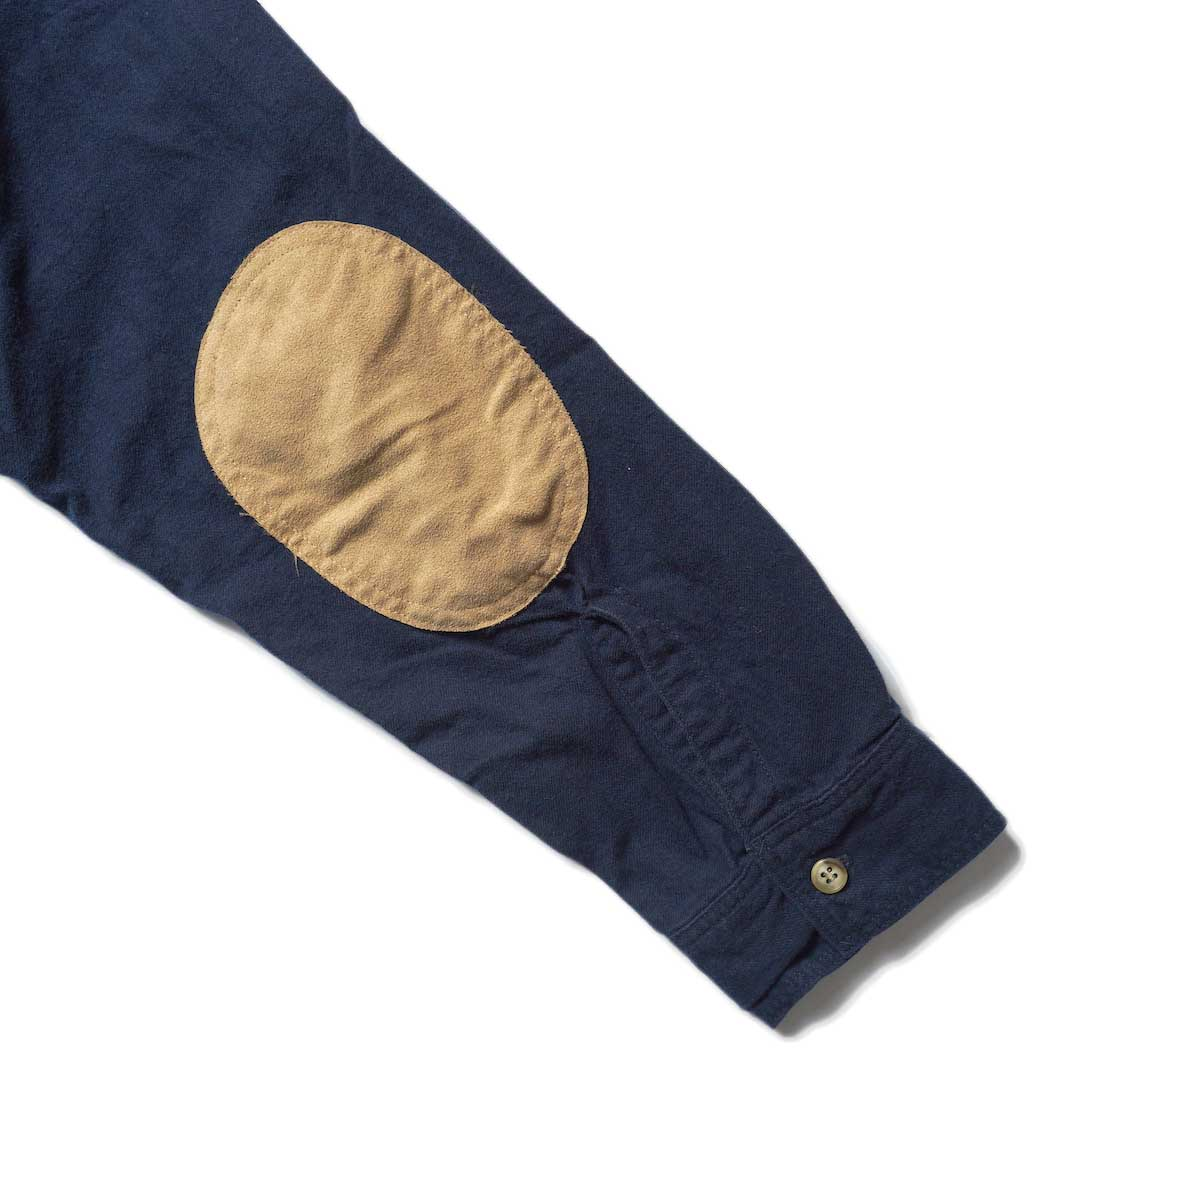 orSlow / VINTAGE FIT WORK SHIRT (Navy)エルボーパッチ